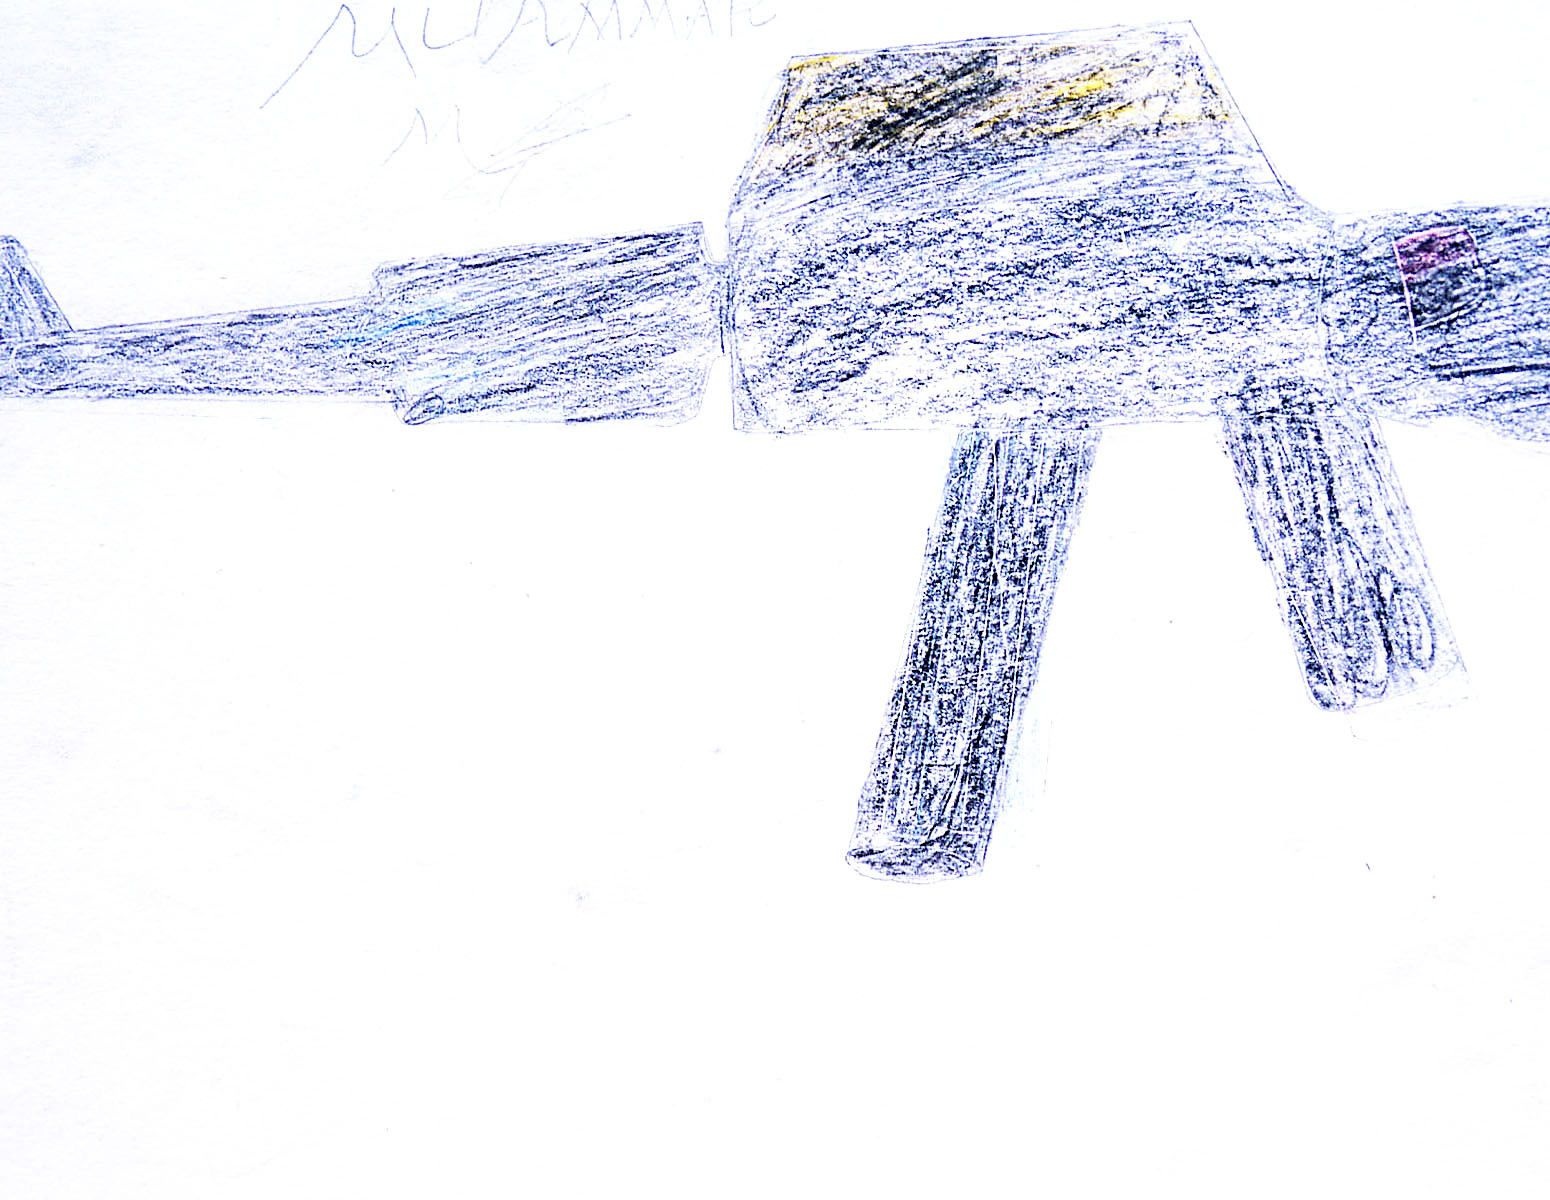 Drawn by a young boy living in a refugee camp.He painted what he saw in his village.